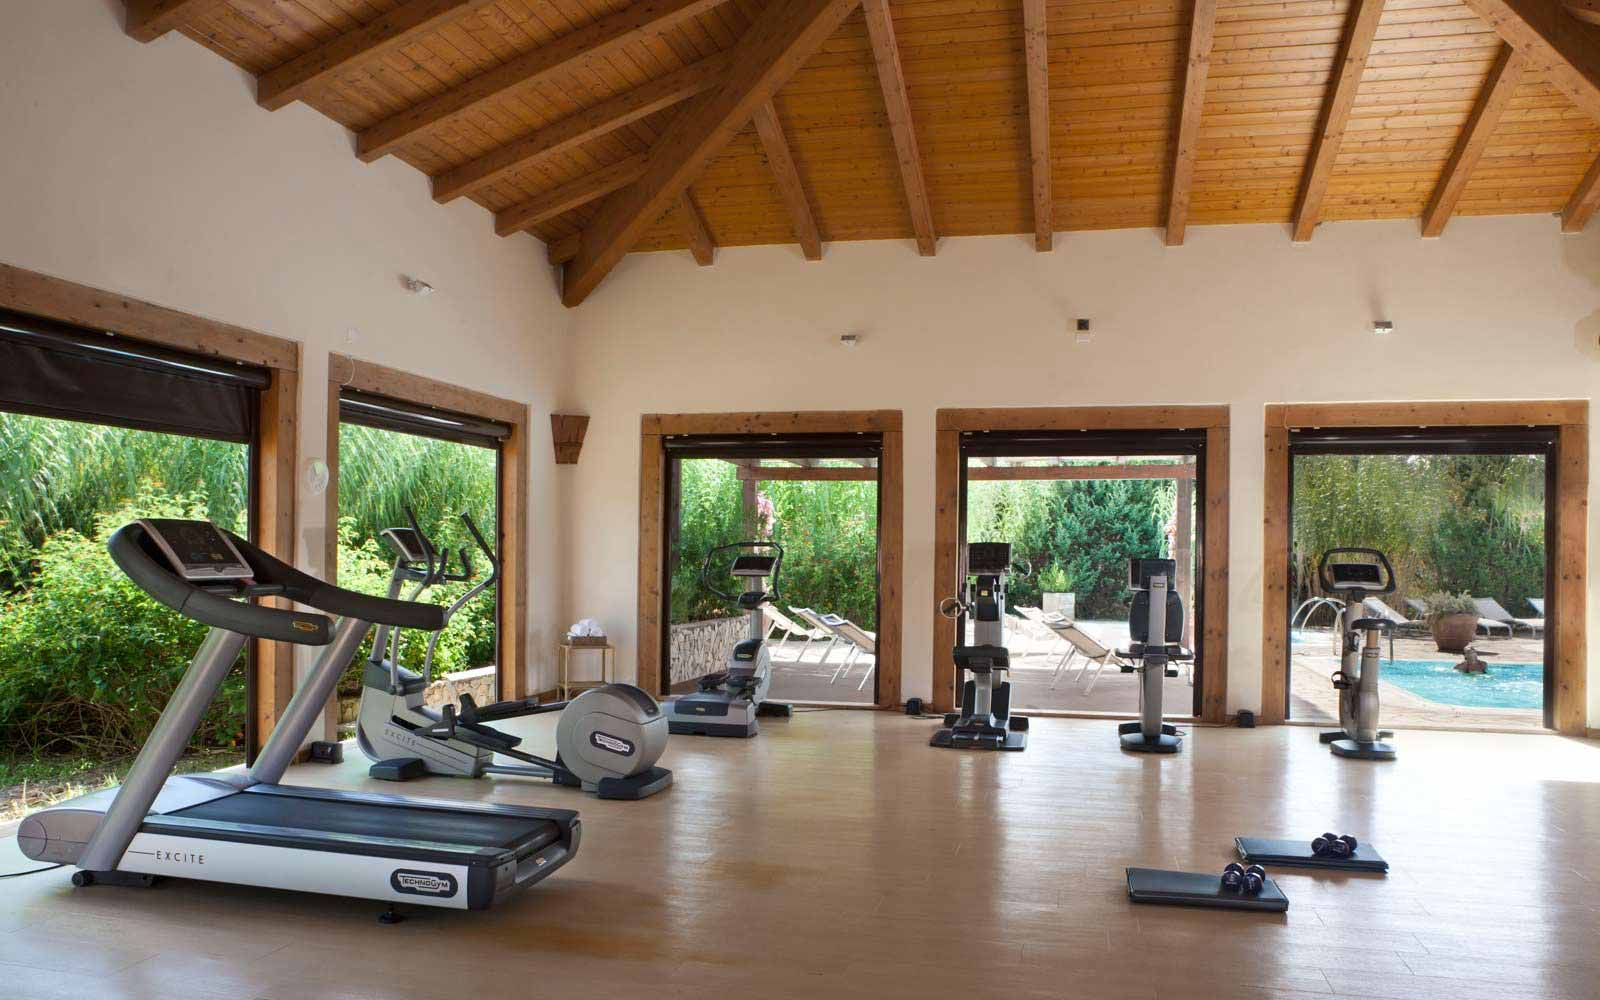 Fitness room at Resort & Spa Le Dune - Hotel & Spa Le Sabine